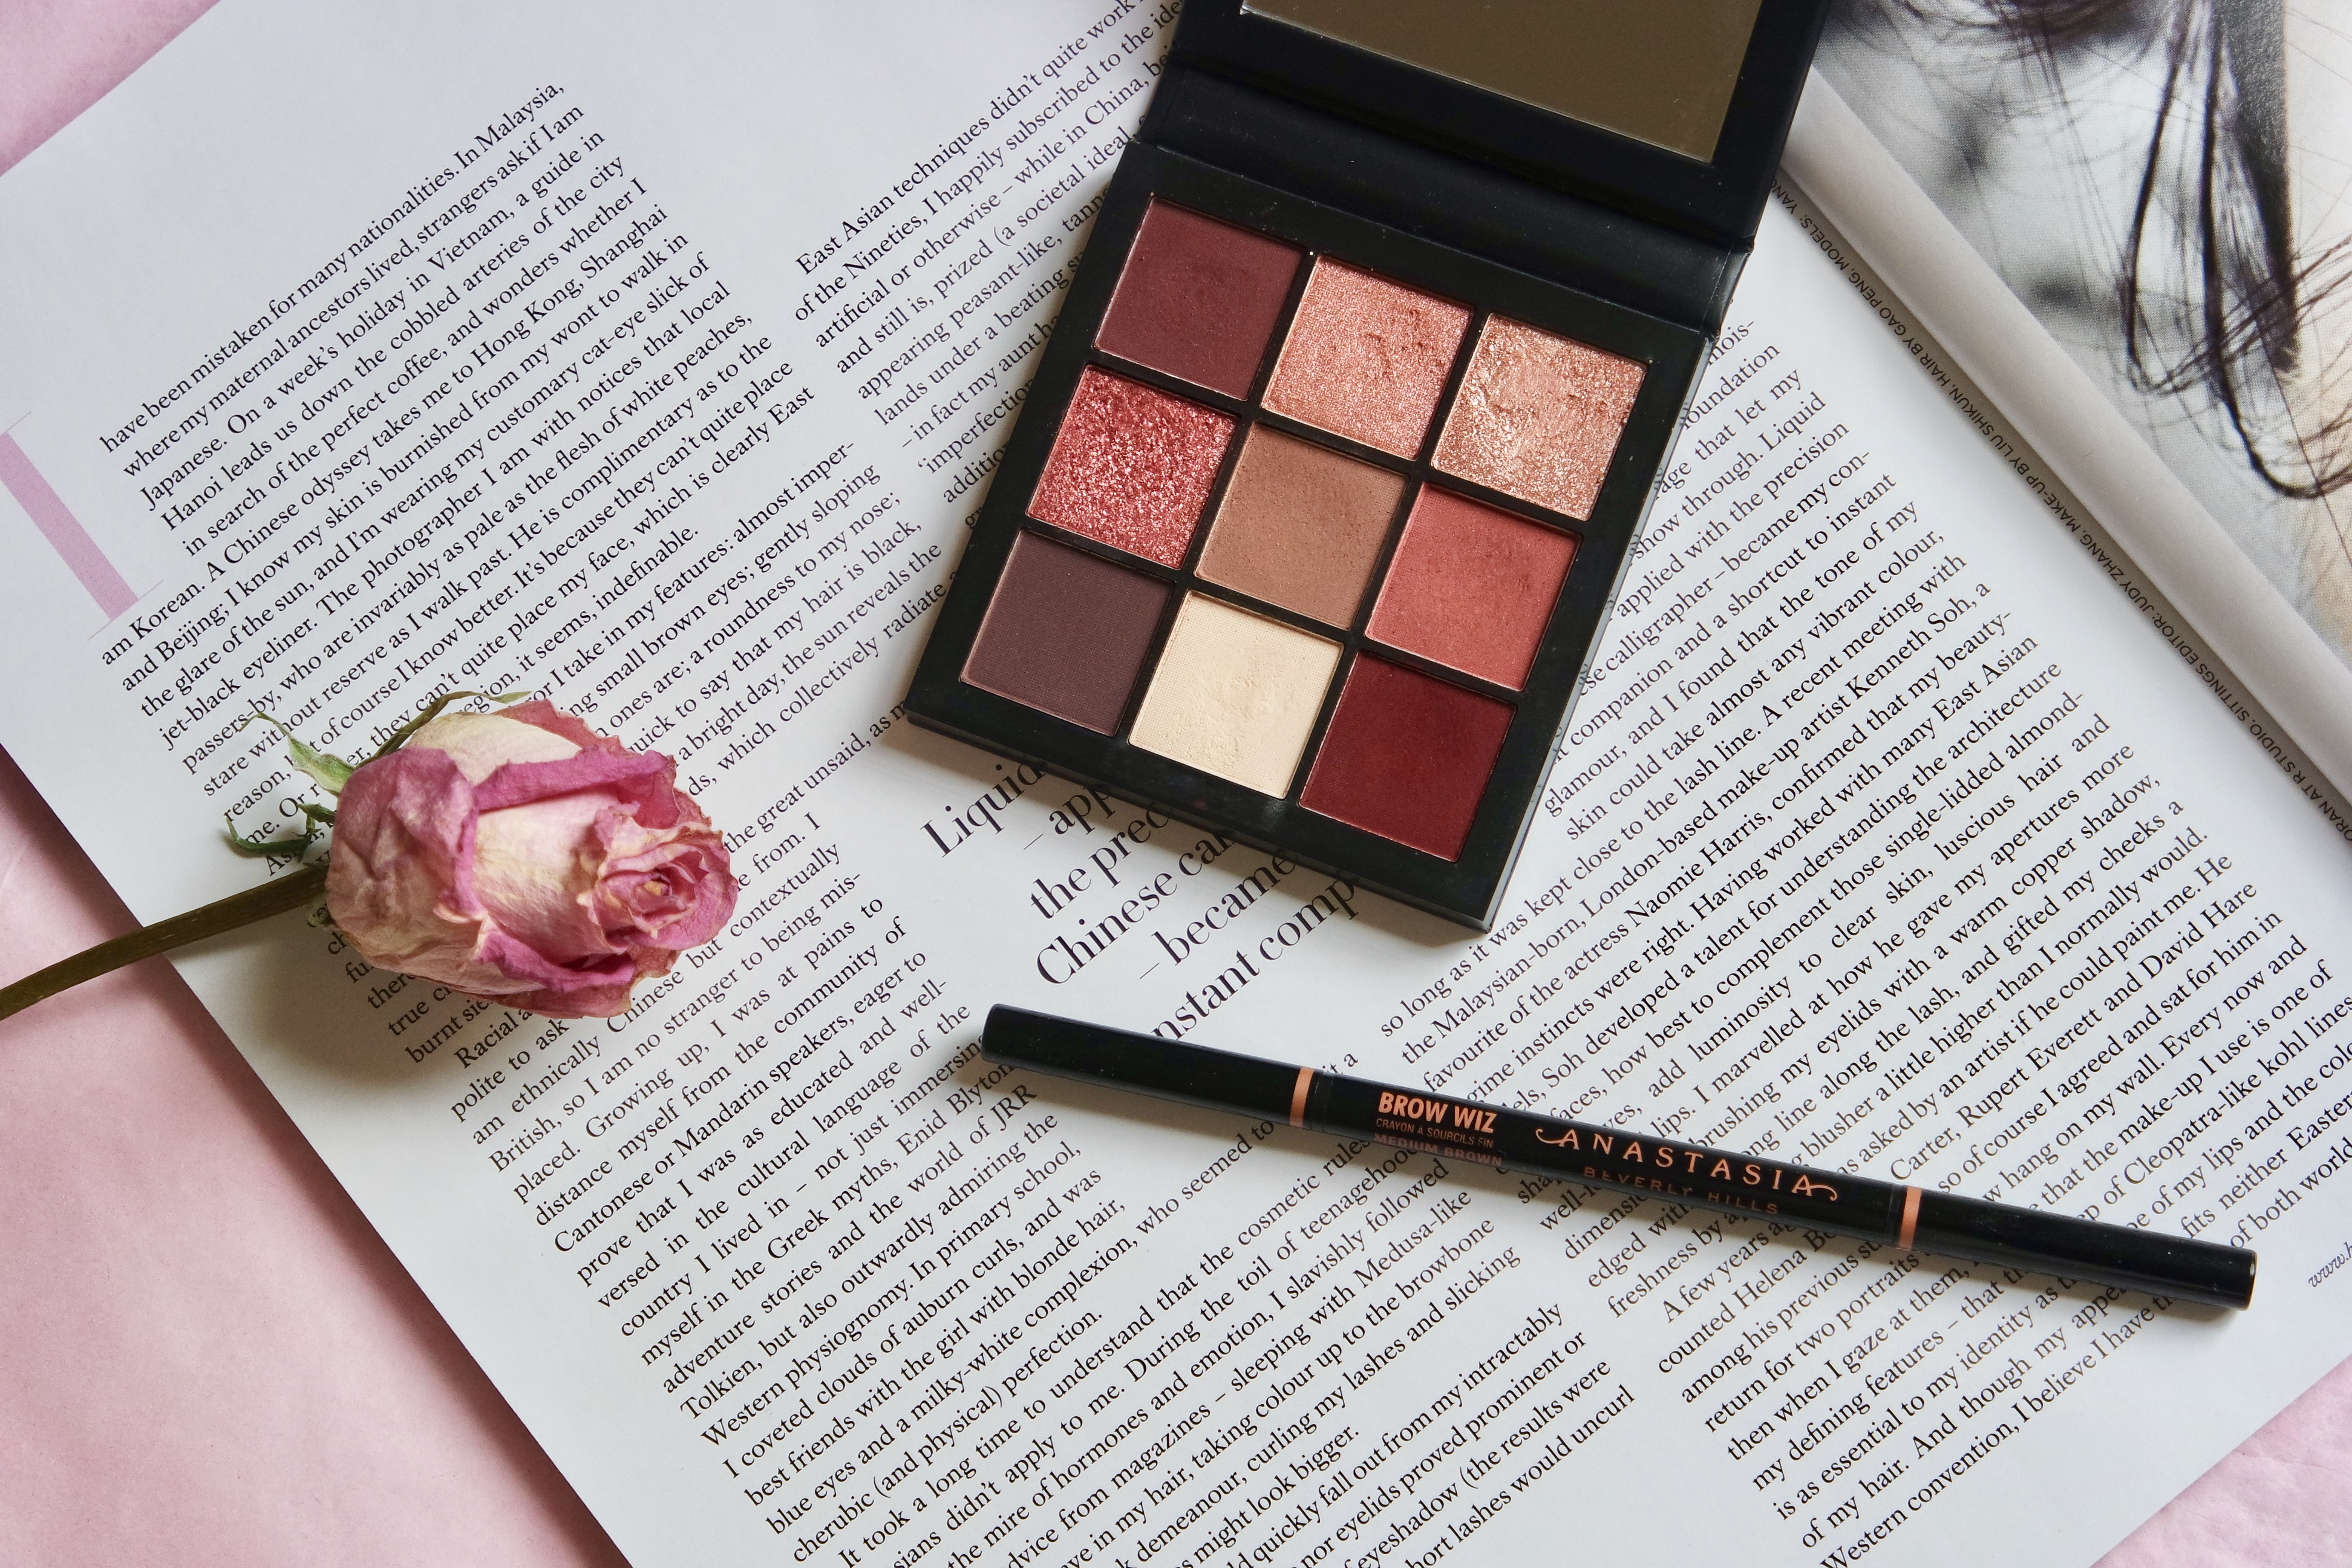 Huda beauty mauve obsessions; Anastasia Beverly Hills Brow Wiz